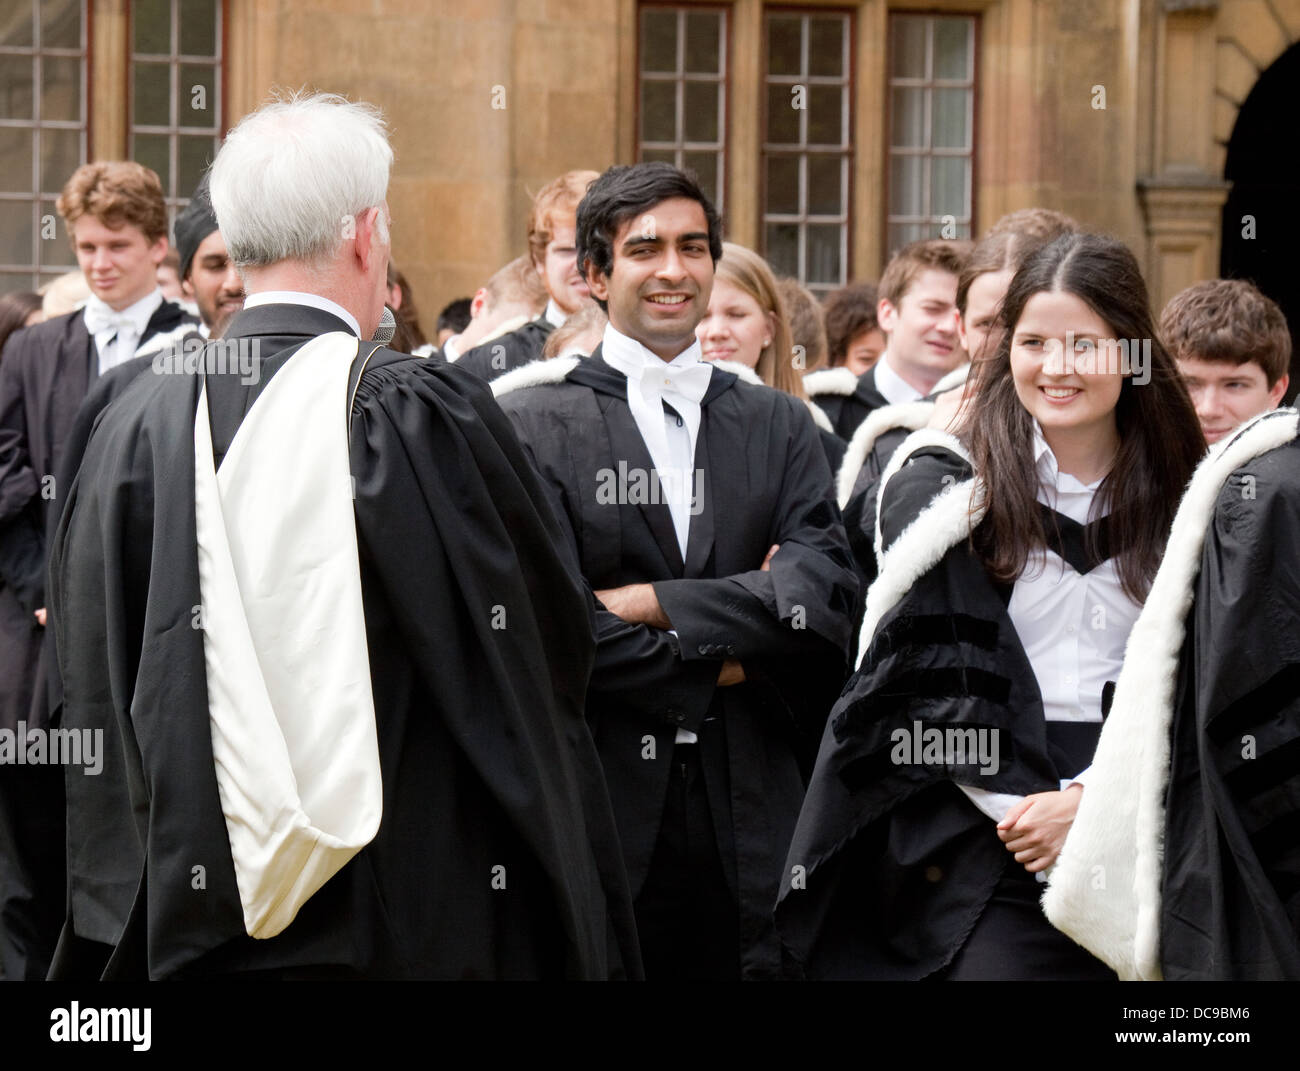 Contemporary Oak Hall Graduation Gowns Crest - Images for wedding ...